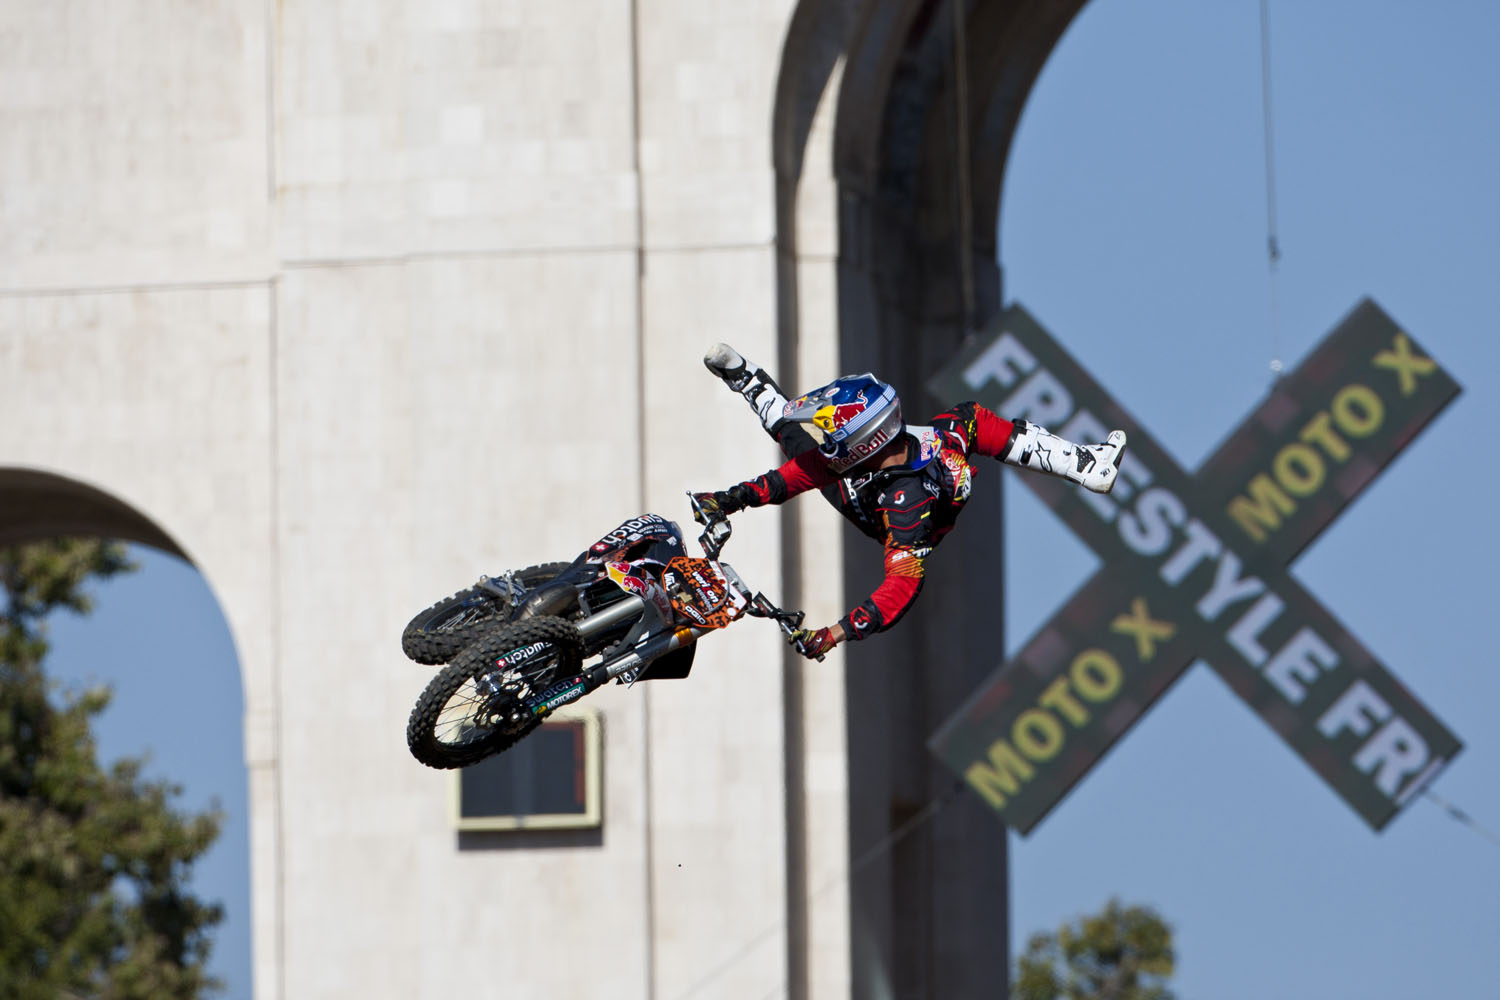 Mat Rebeaud busts out some crazy moves in the FMX Freestyle finals during X Games 16 on July 29, 2010 in Los Angeles, California.